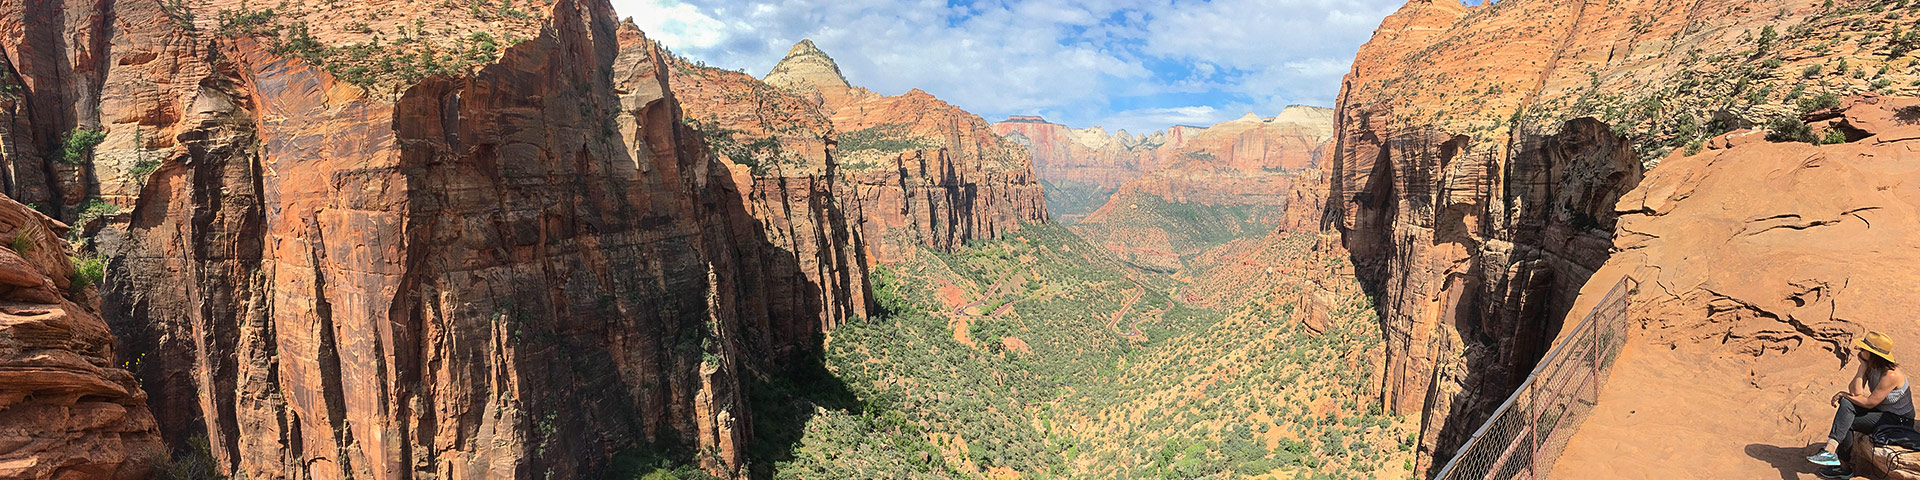 Canyon Overlook hike in Zion National Park